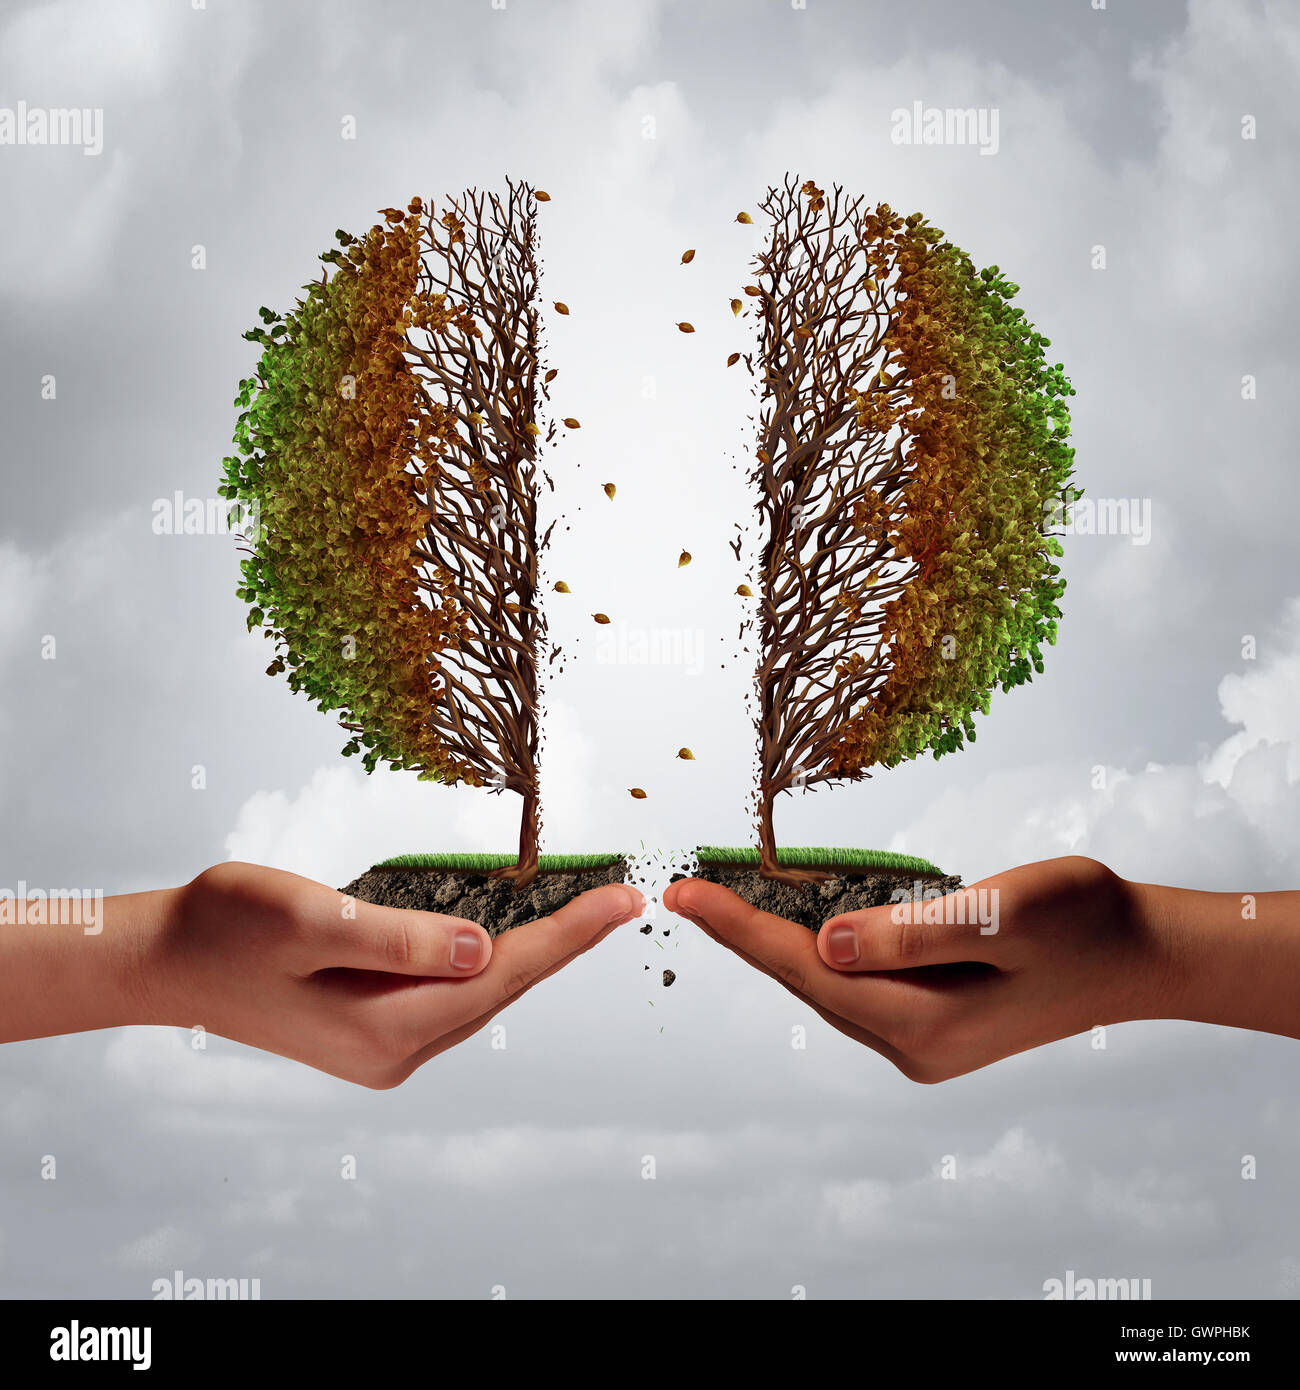 Broken and divided trouble concept as two diverse hands tearing apart a tree resulting in damage and weakness as - Stock Image